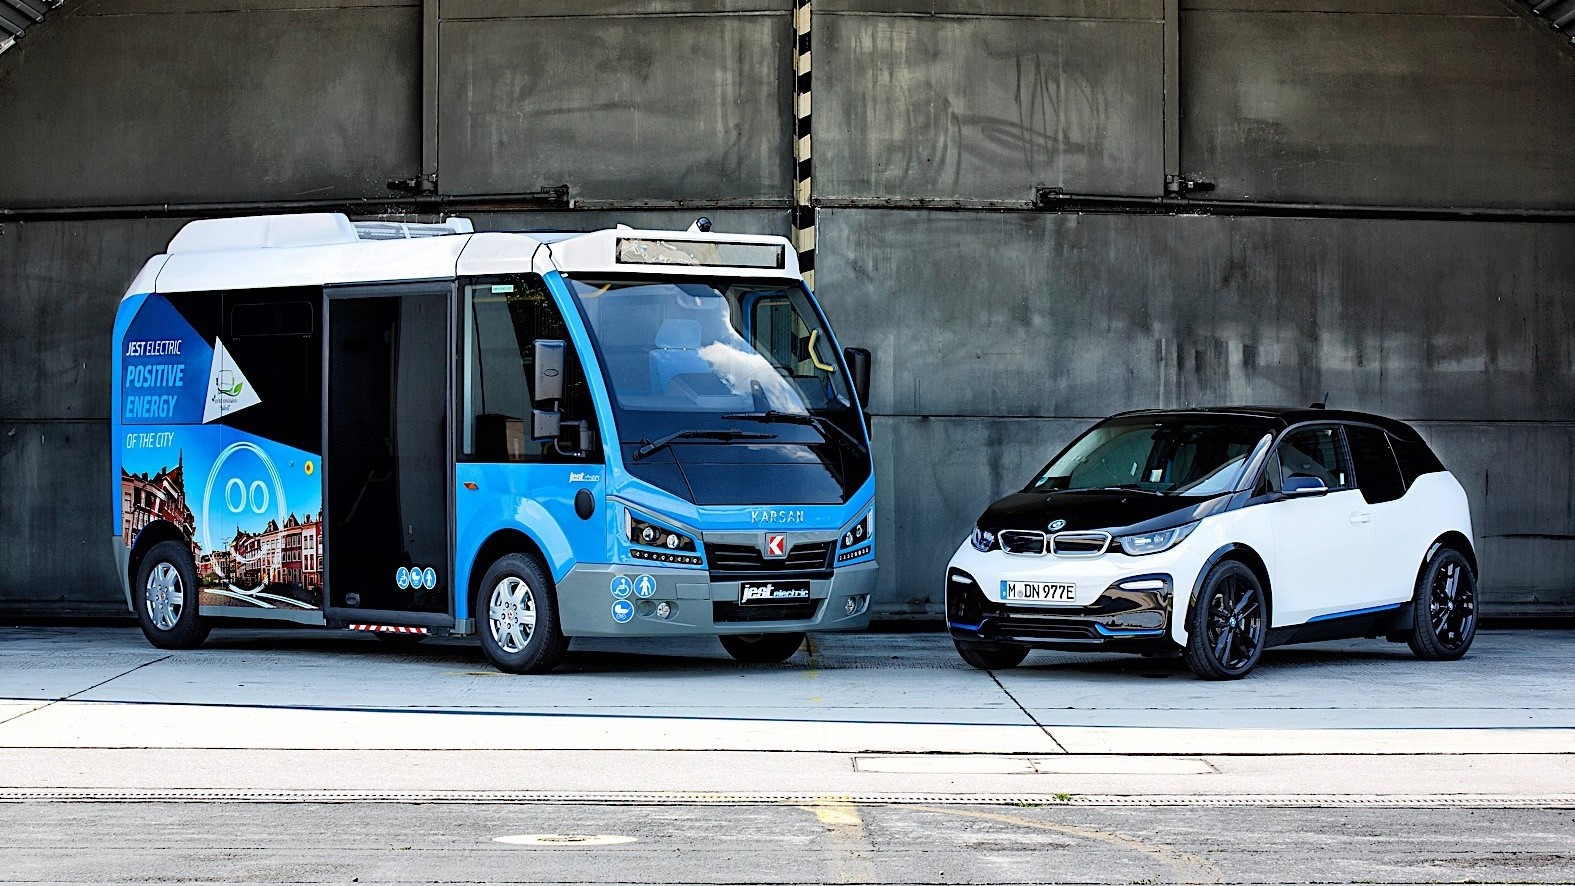 bmw-i3-batteries-and-motors-to-power-karsan-jest-city-buses_3